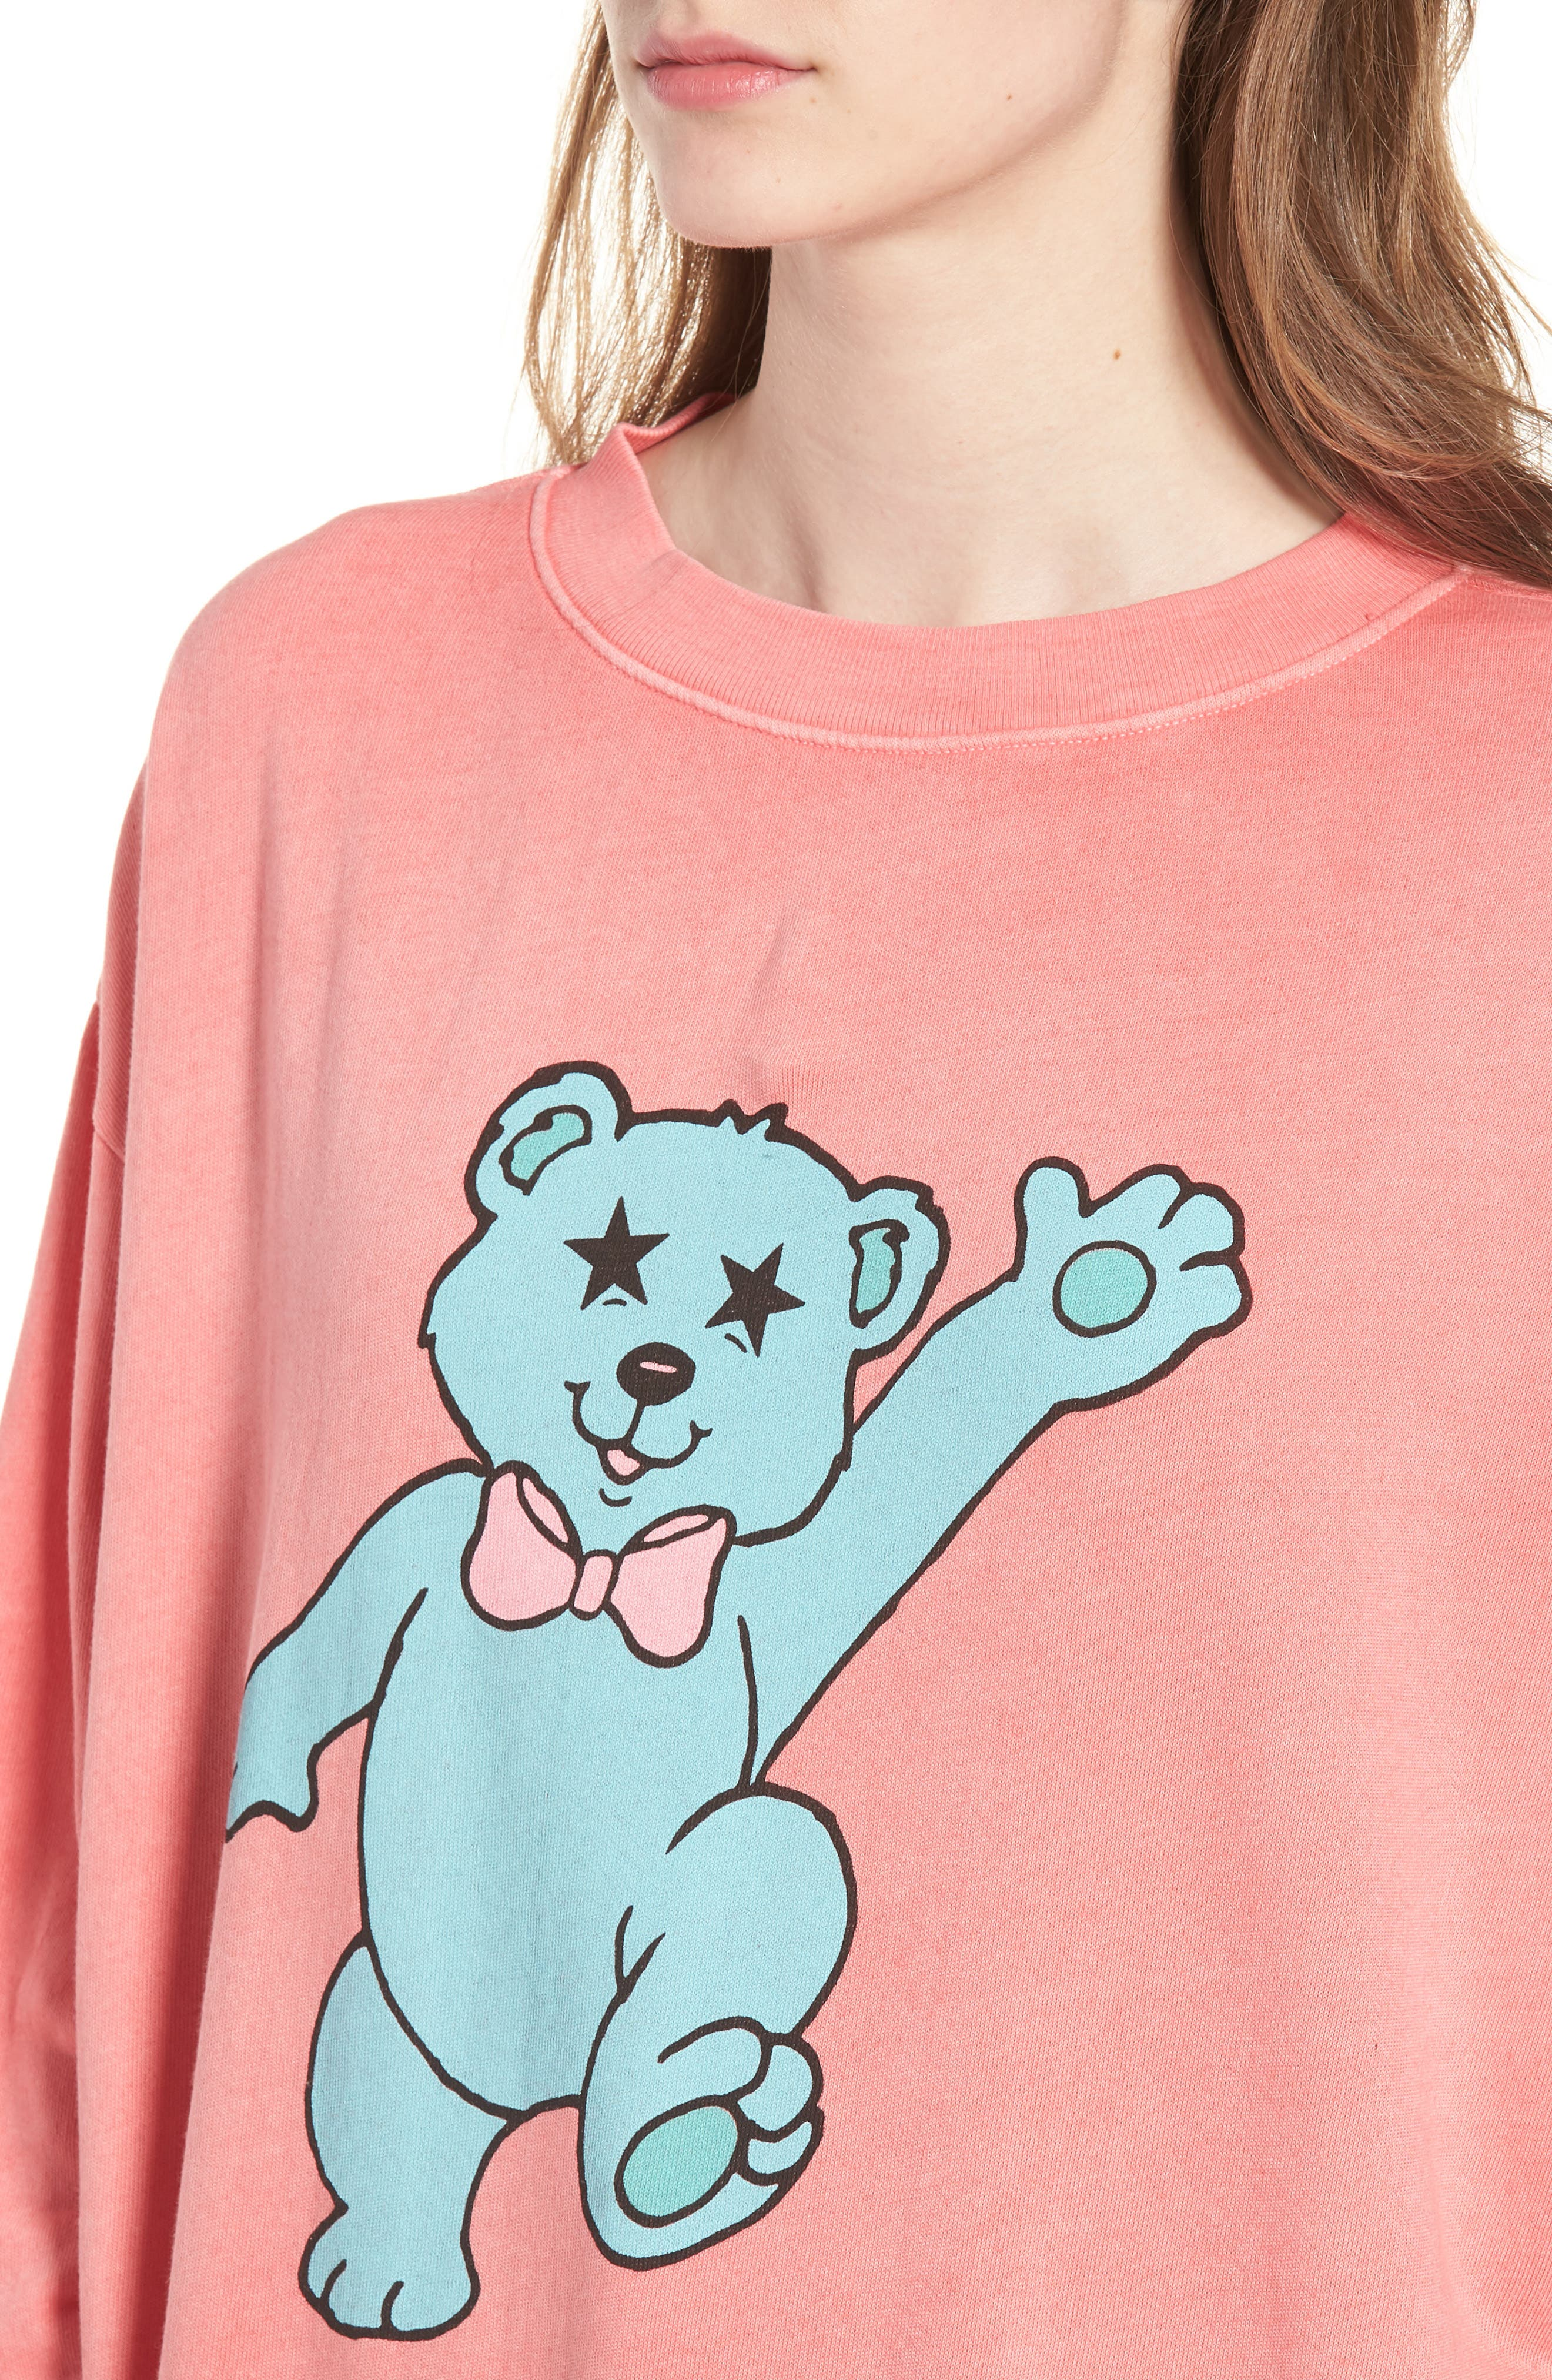 Groovy Teddy Road Trip Pullover Sweatshirt,                             Alternate thumbnail 4, color,                             Pigment Red Flare